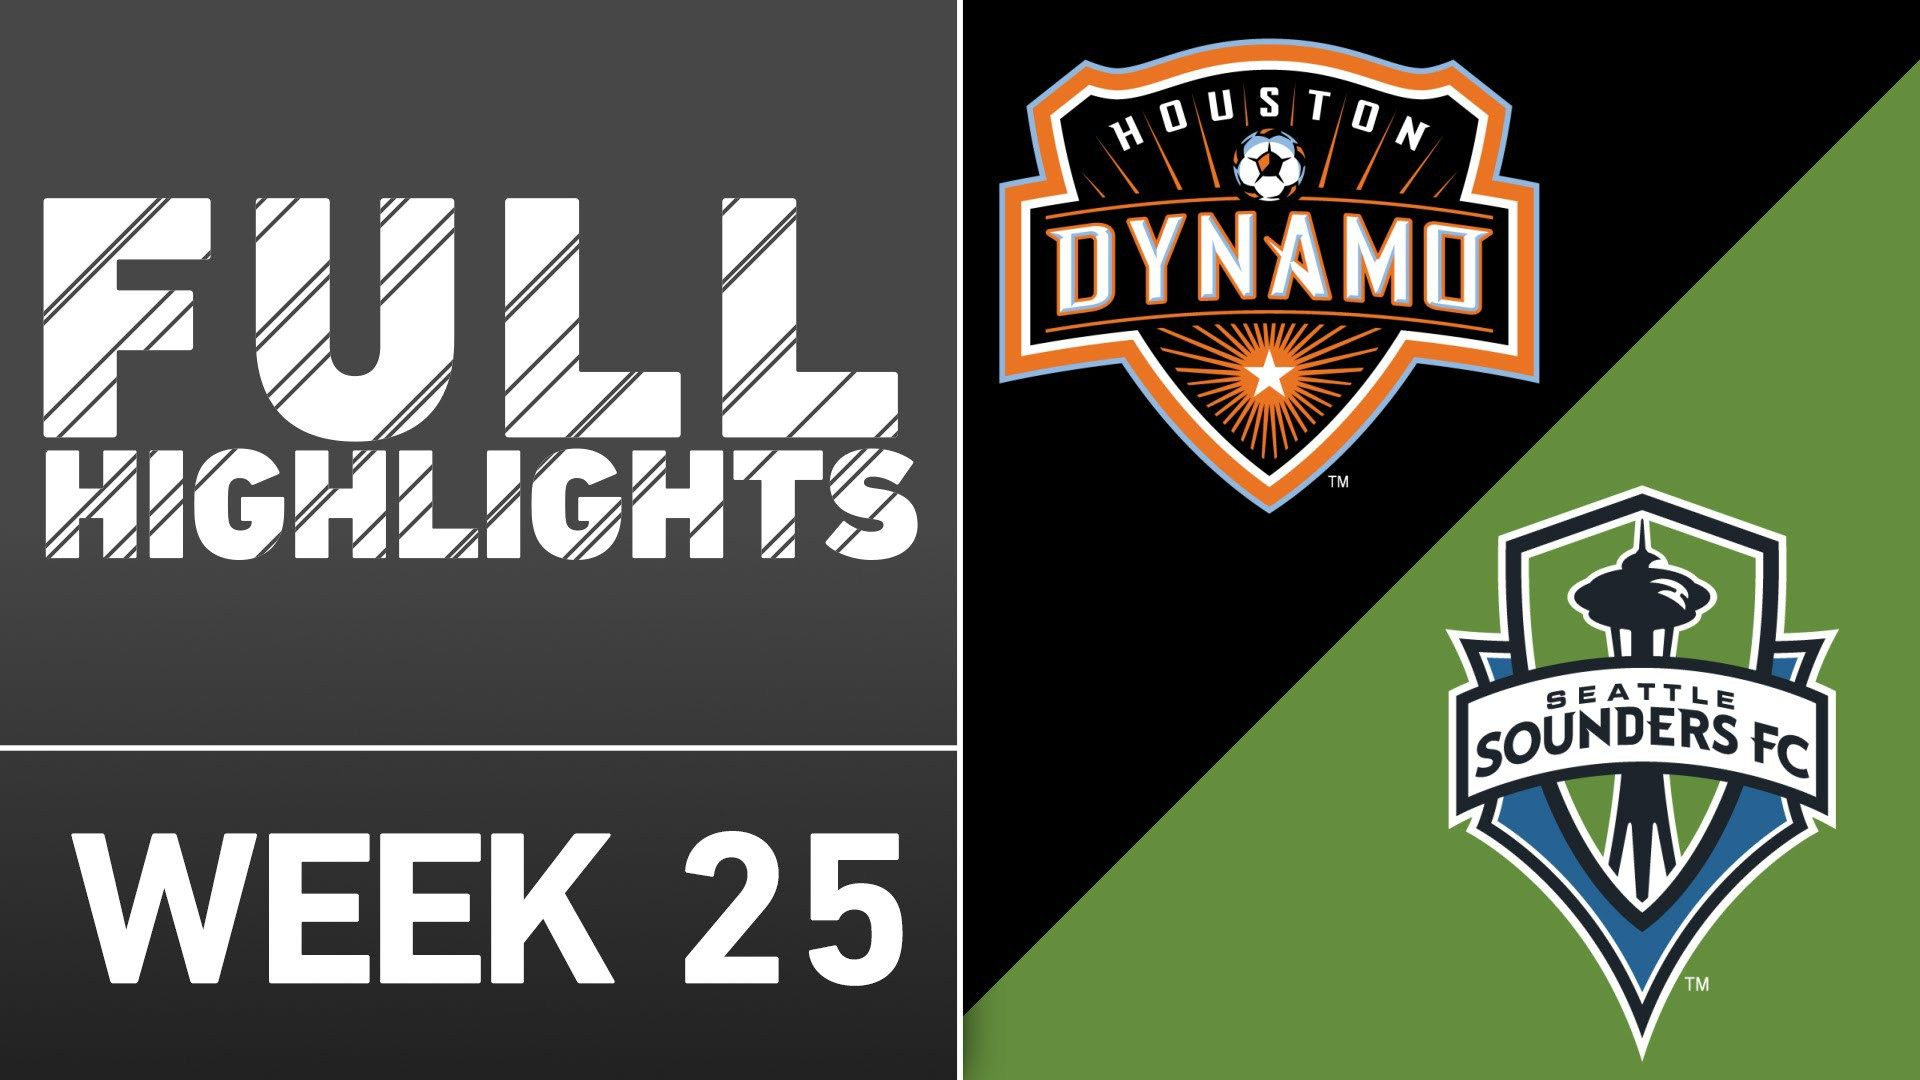 HIGHLIGHTS Sporting kansas city, Dc united, Seattle sounders